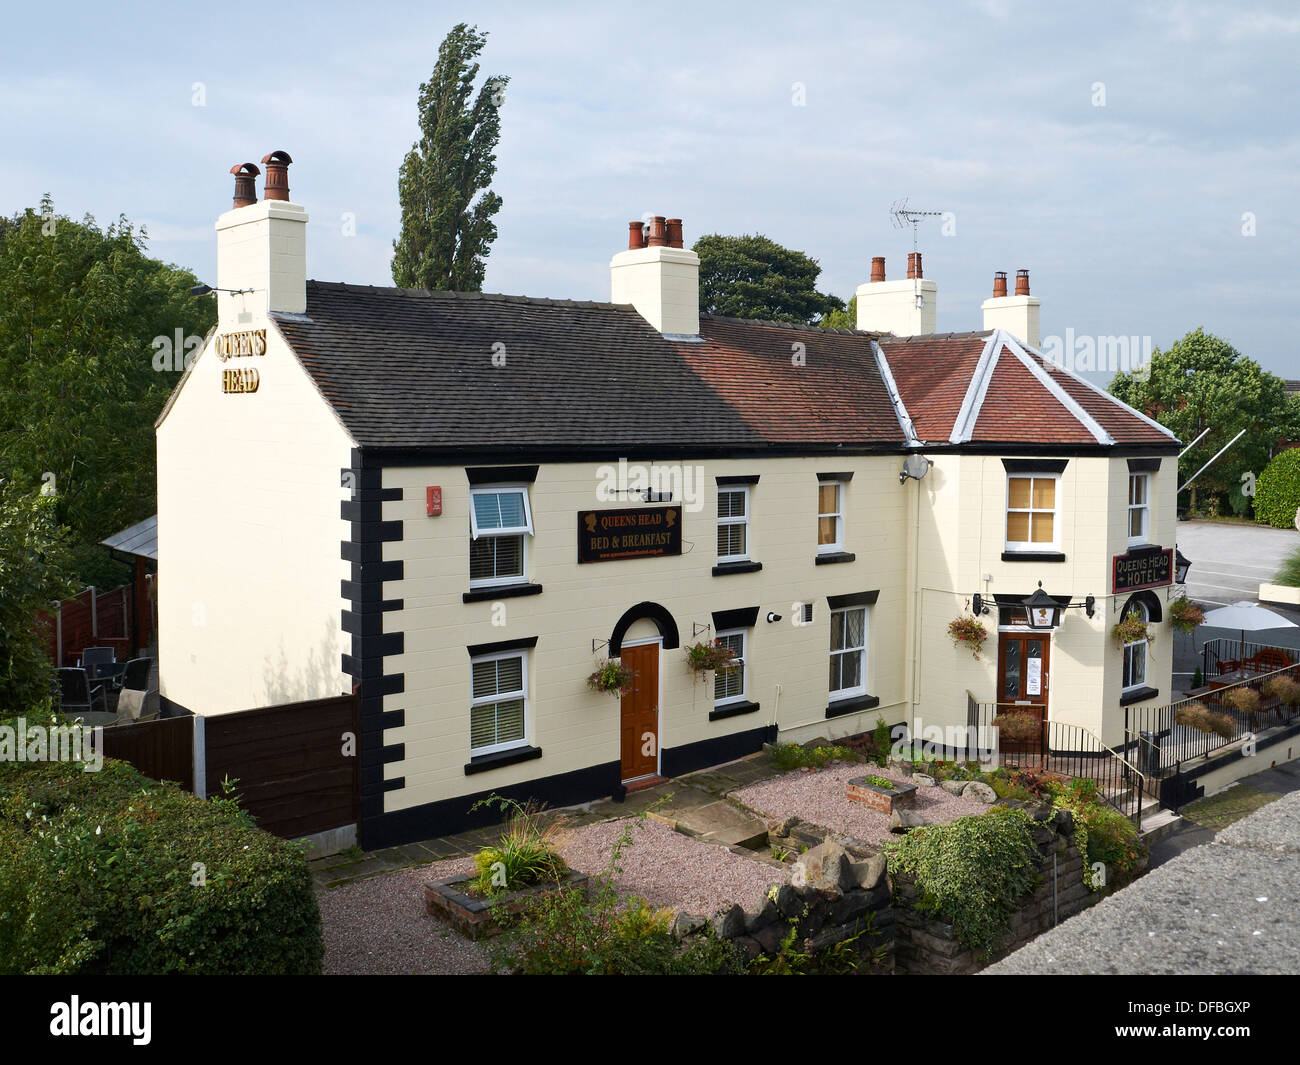 Queens Head hotel in Congleton Cheshire UK - Stock Image